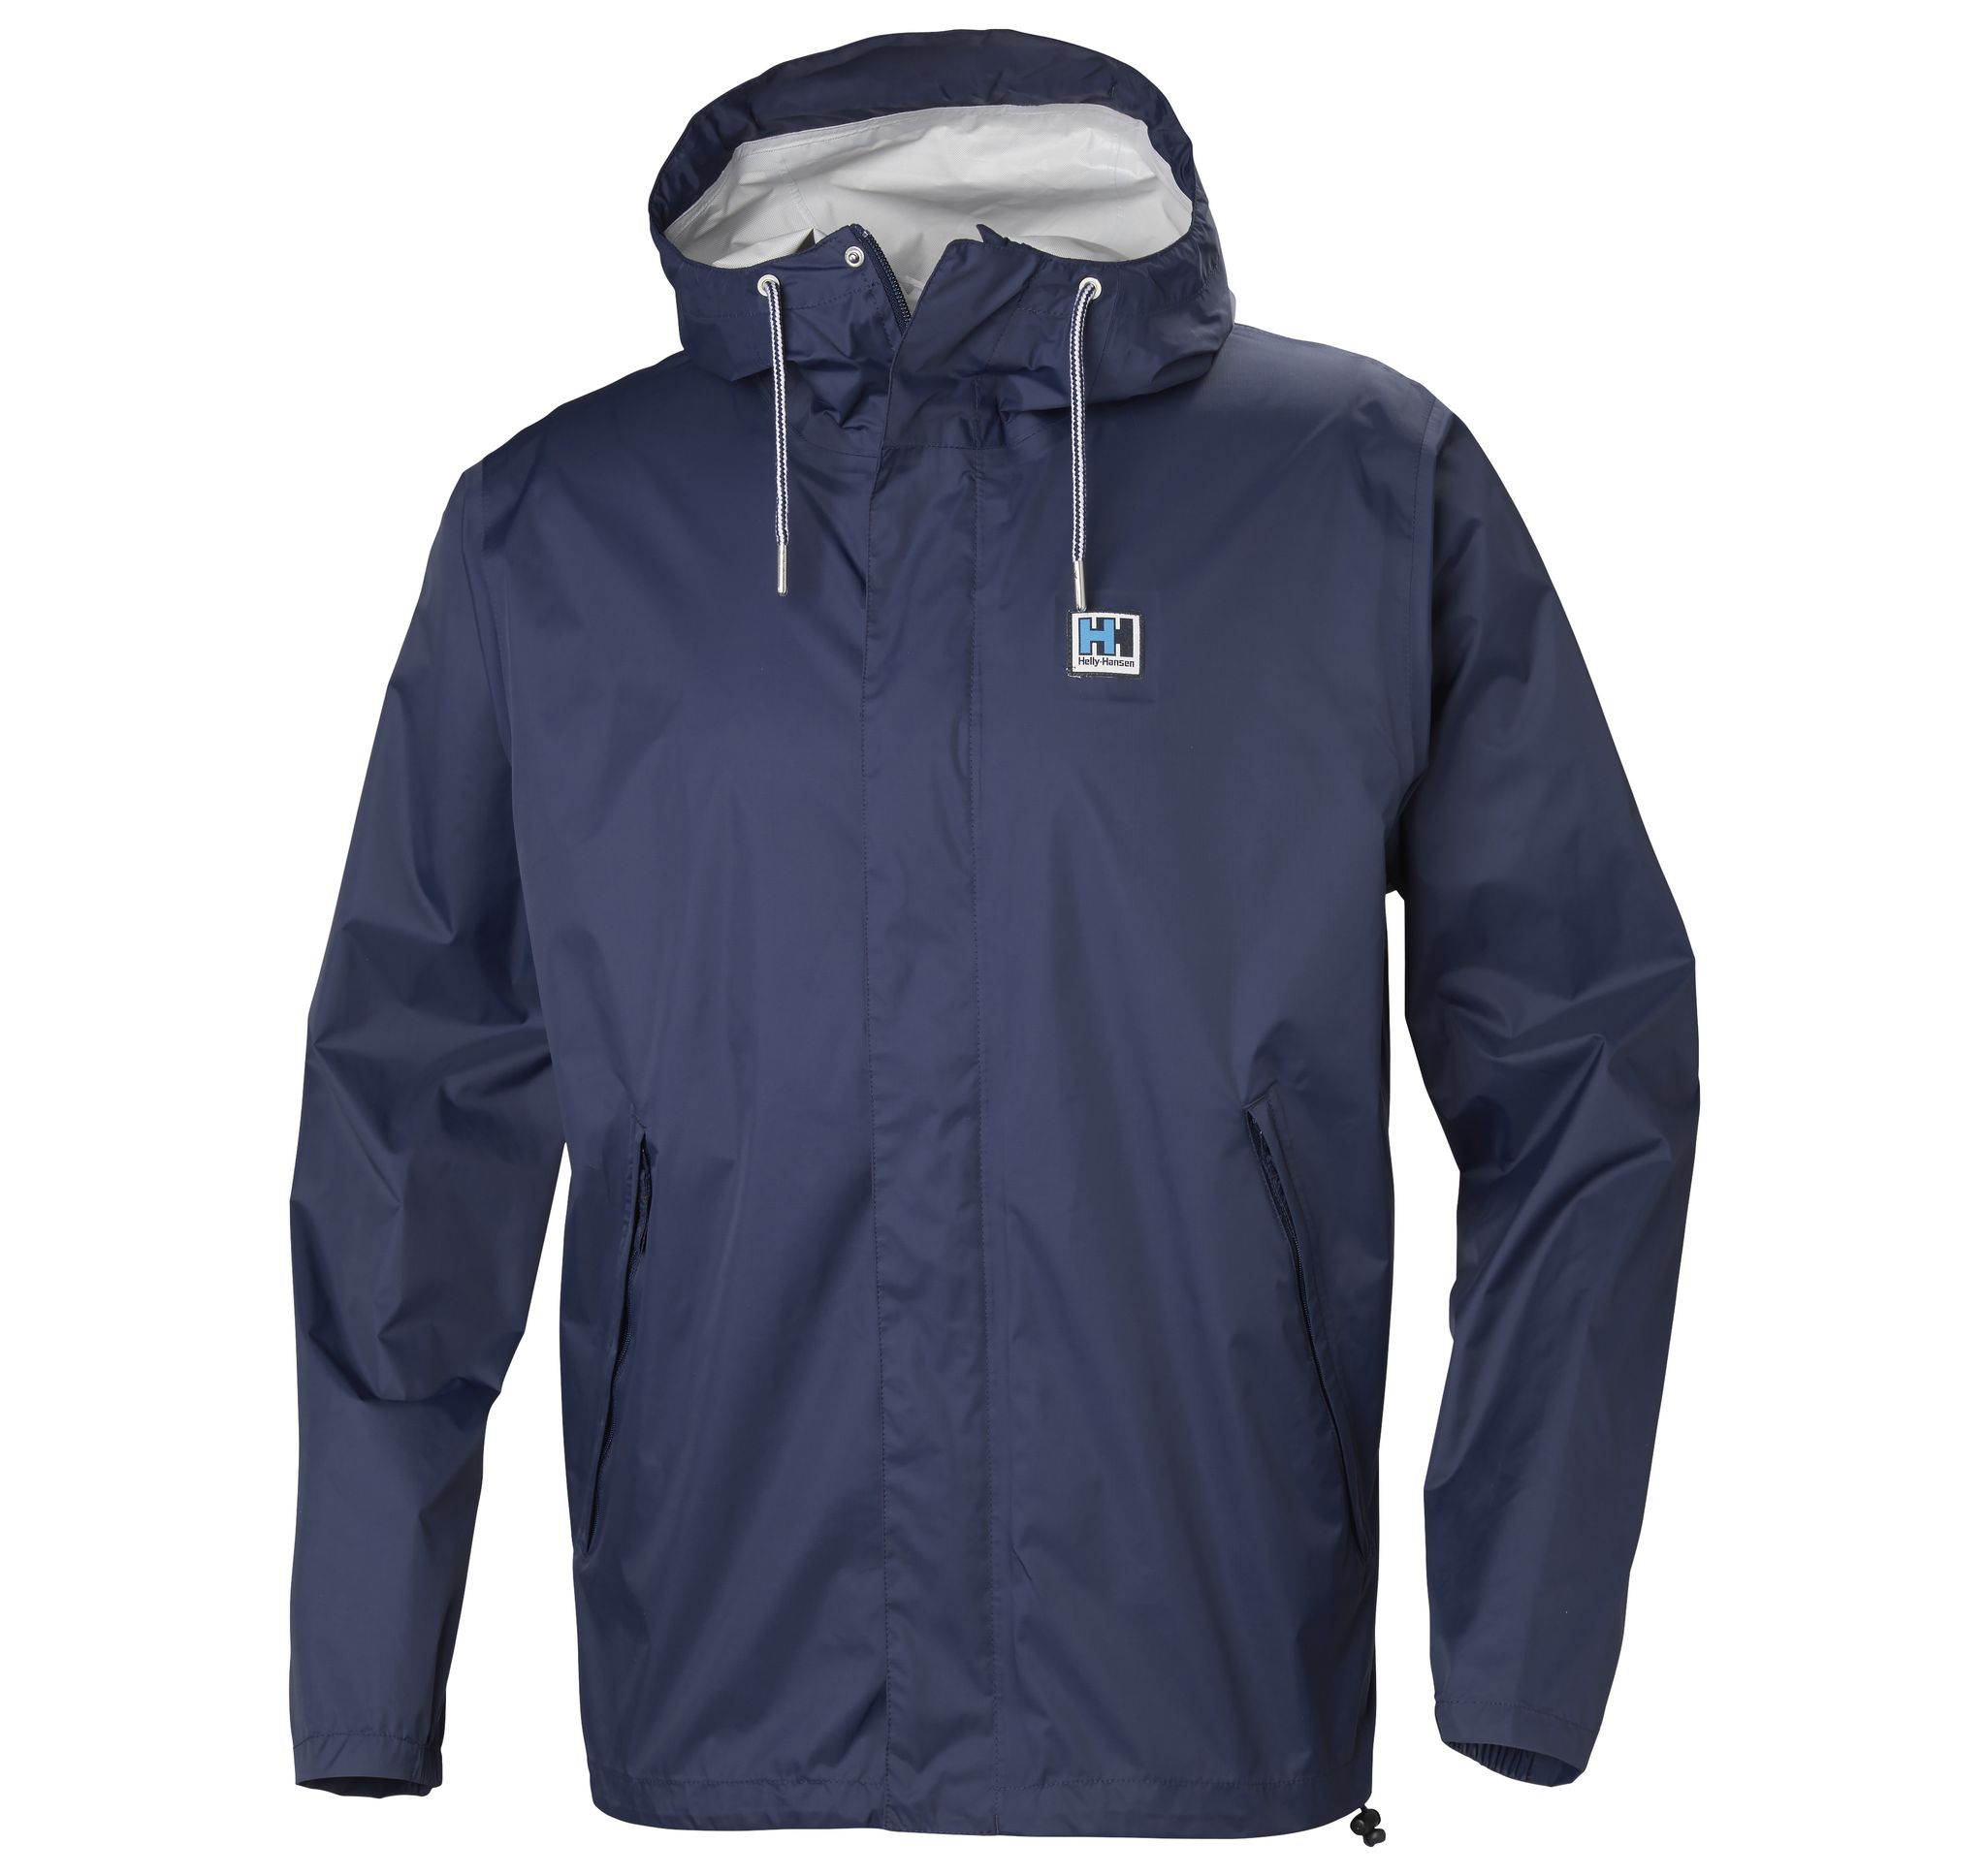 HH MOUNTAIN JACKET, 689 EVENING BLUE, L